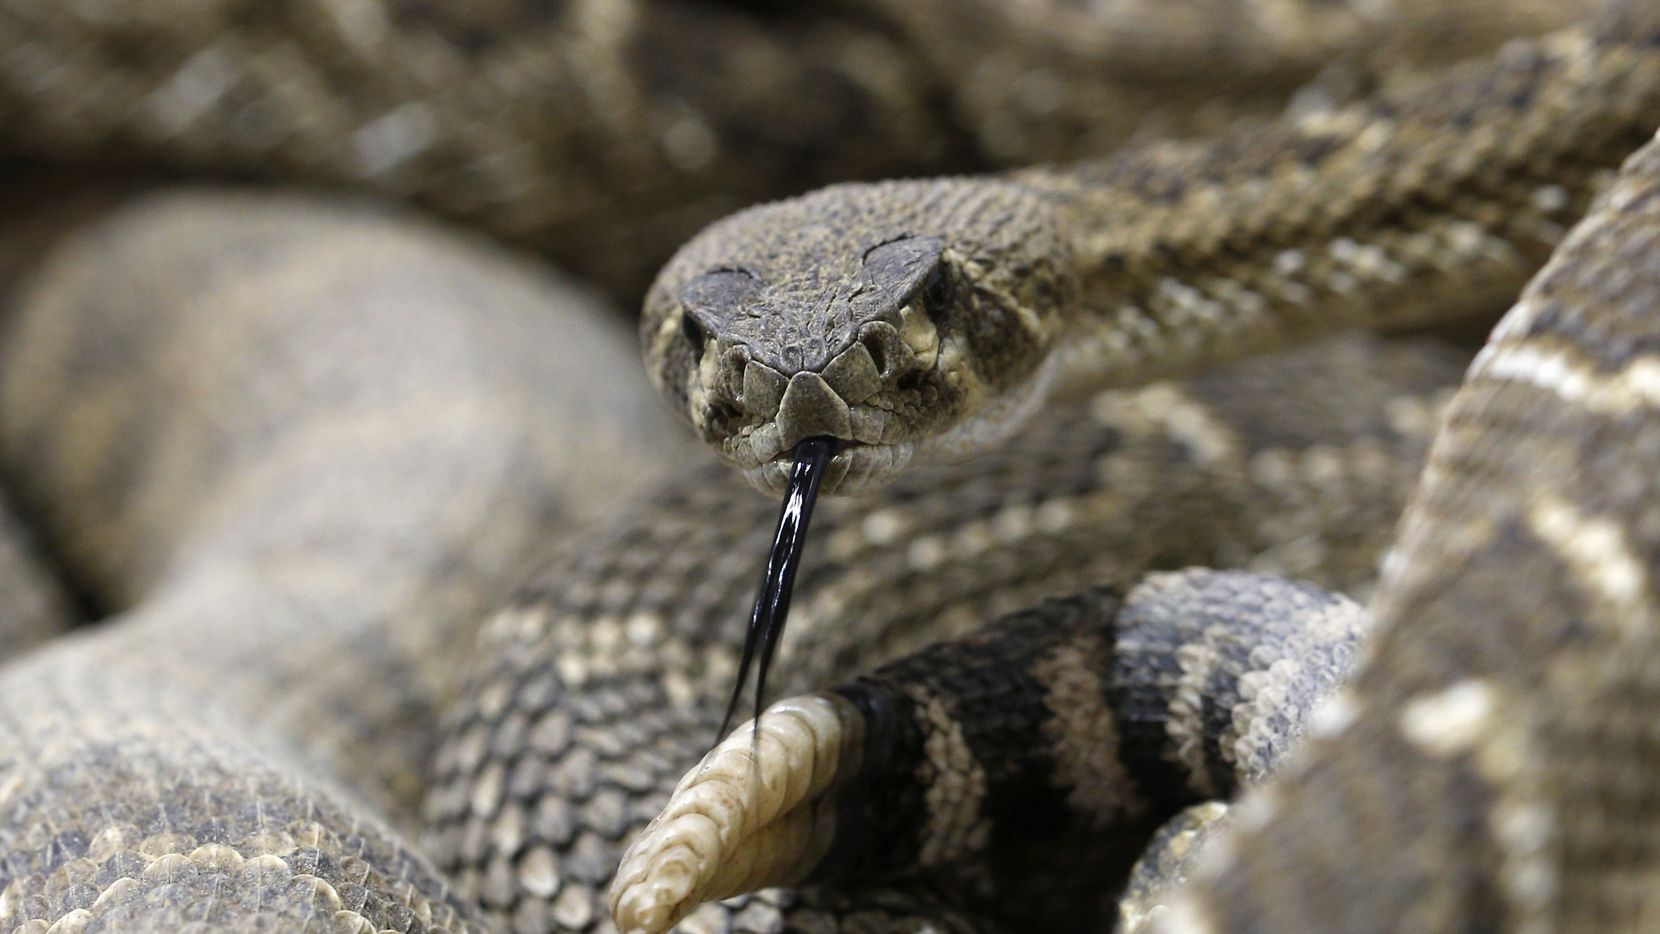 Rattlesnakes in the collection pit at Nolan County Coliseum during the Sweetwater Rattlesnake Roundup in Sweetwater, Texas on March 10, 2017. (Nathan Hunsinger/The Dallas Morning News)